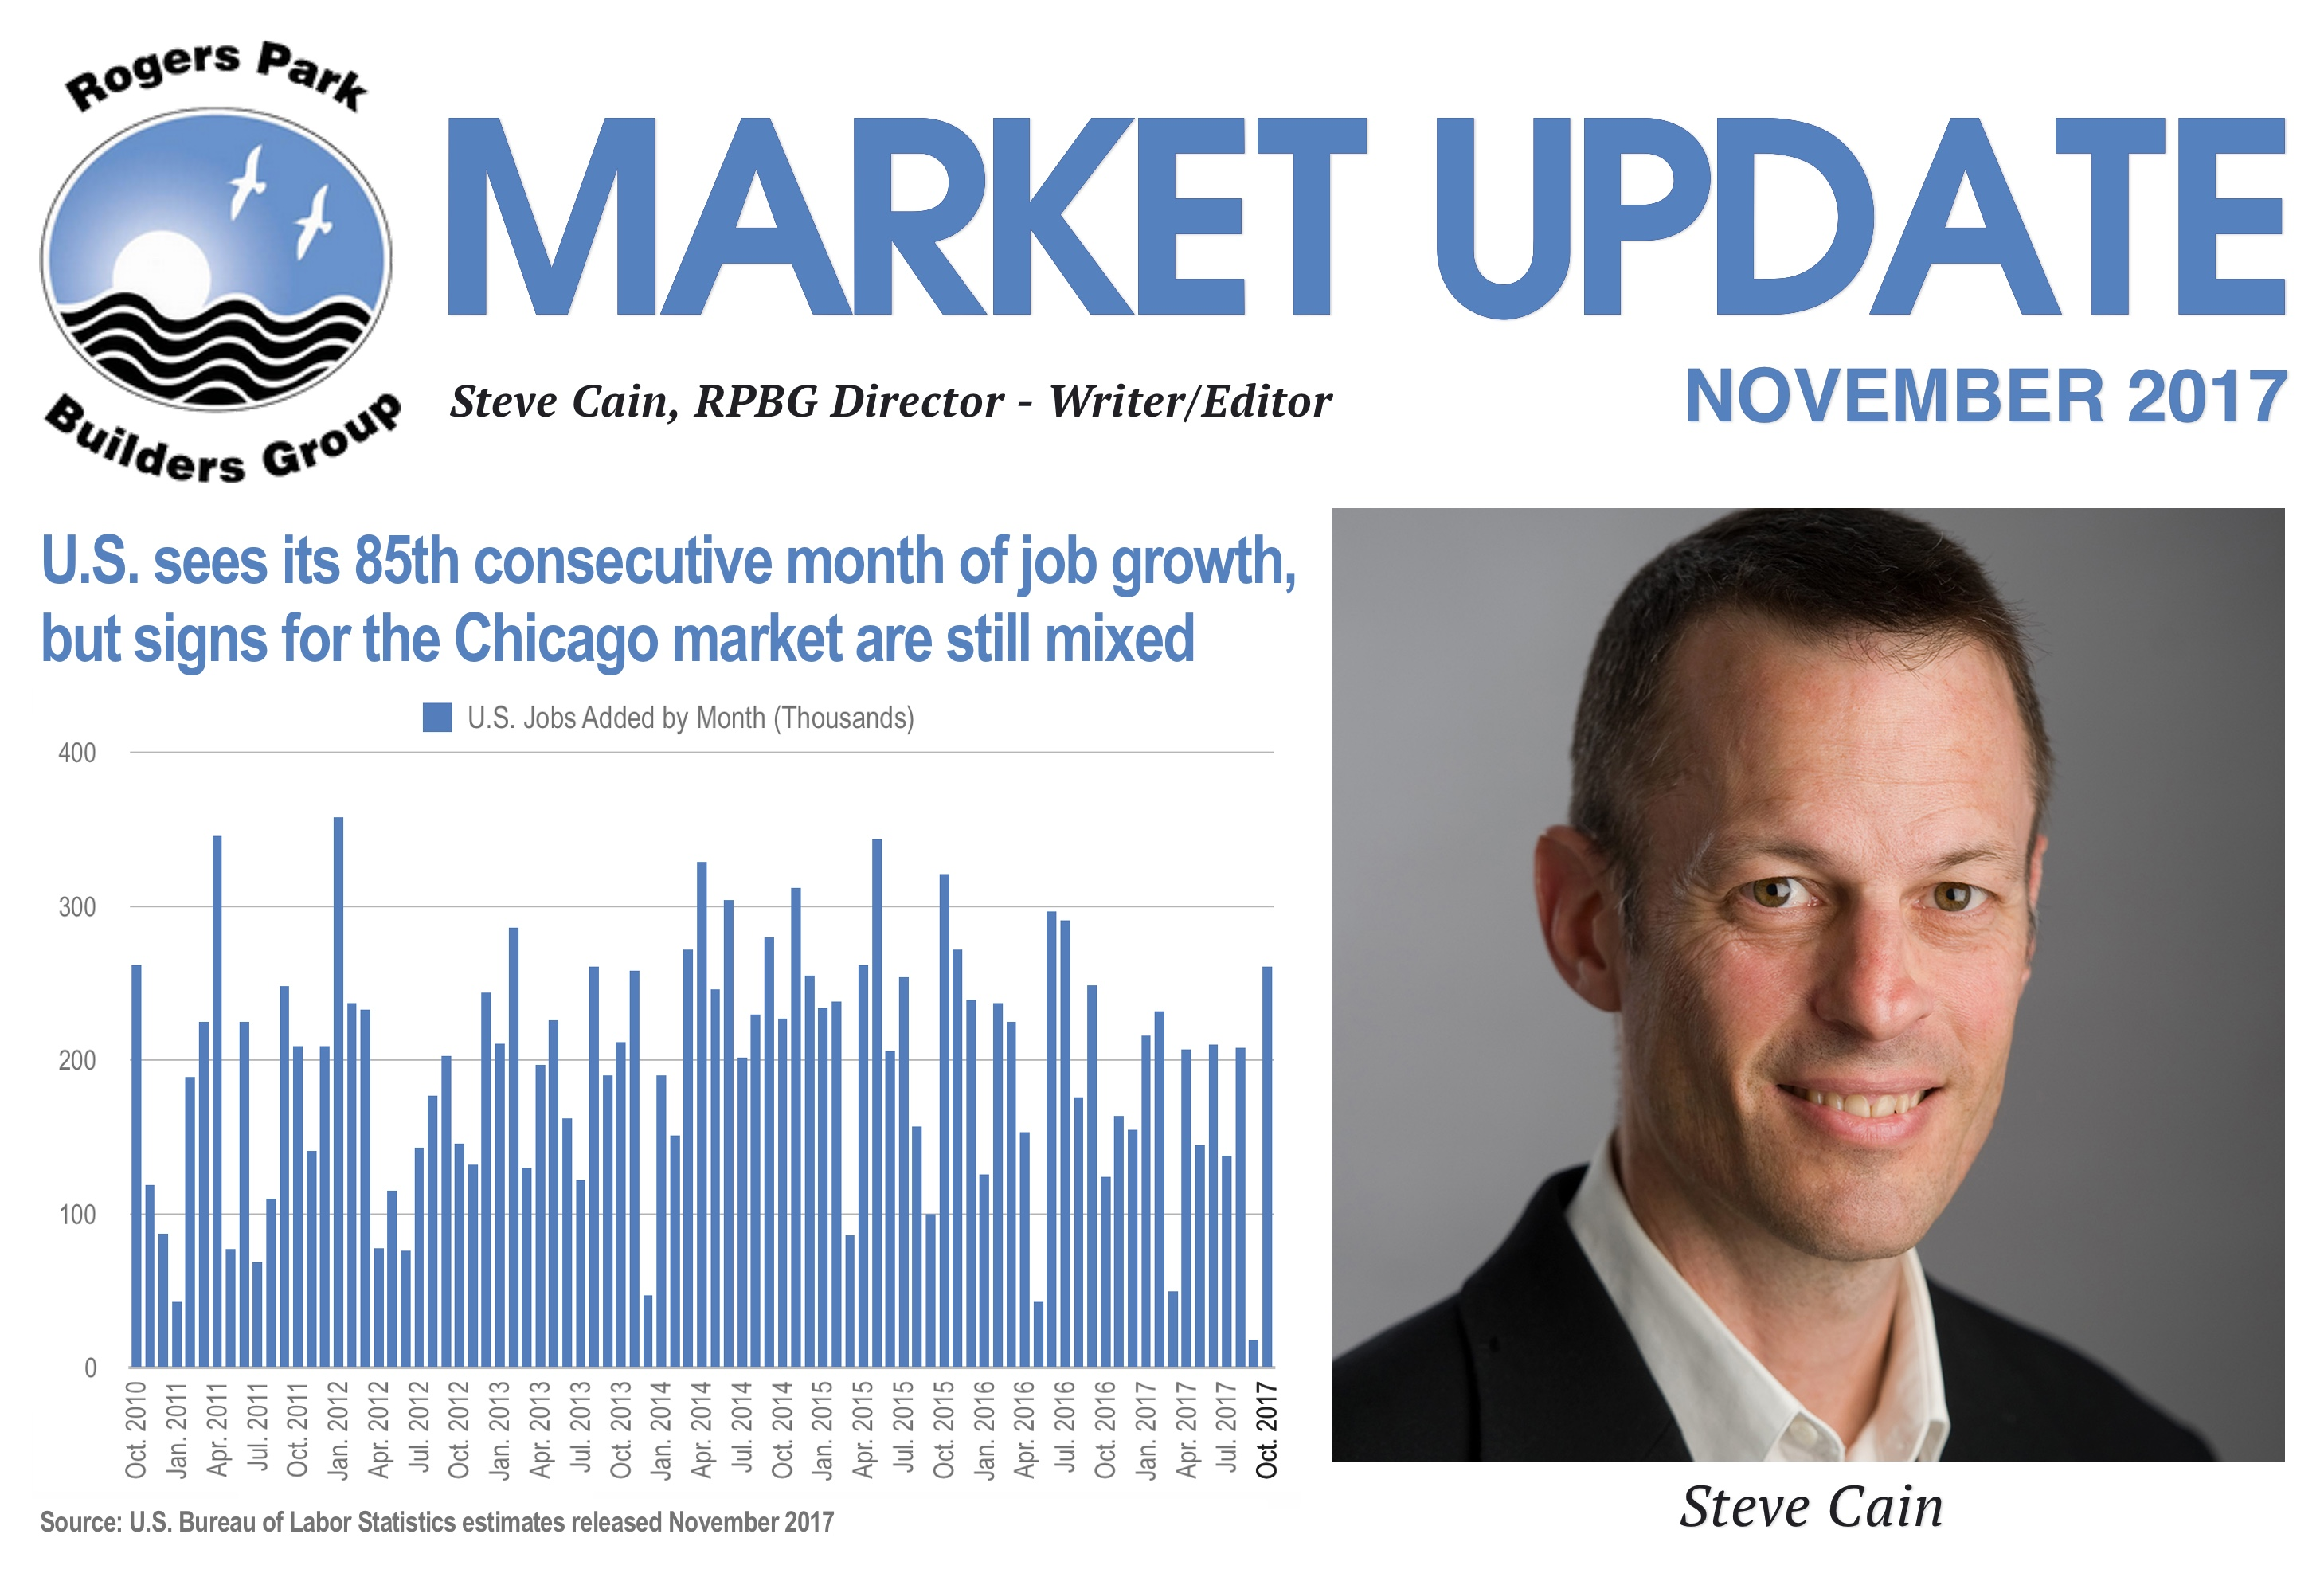 November 2017 Market Update | Steve Cain, RPBG Director - Writer / Editor